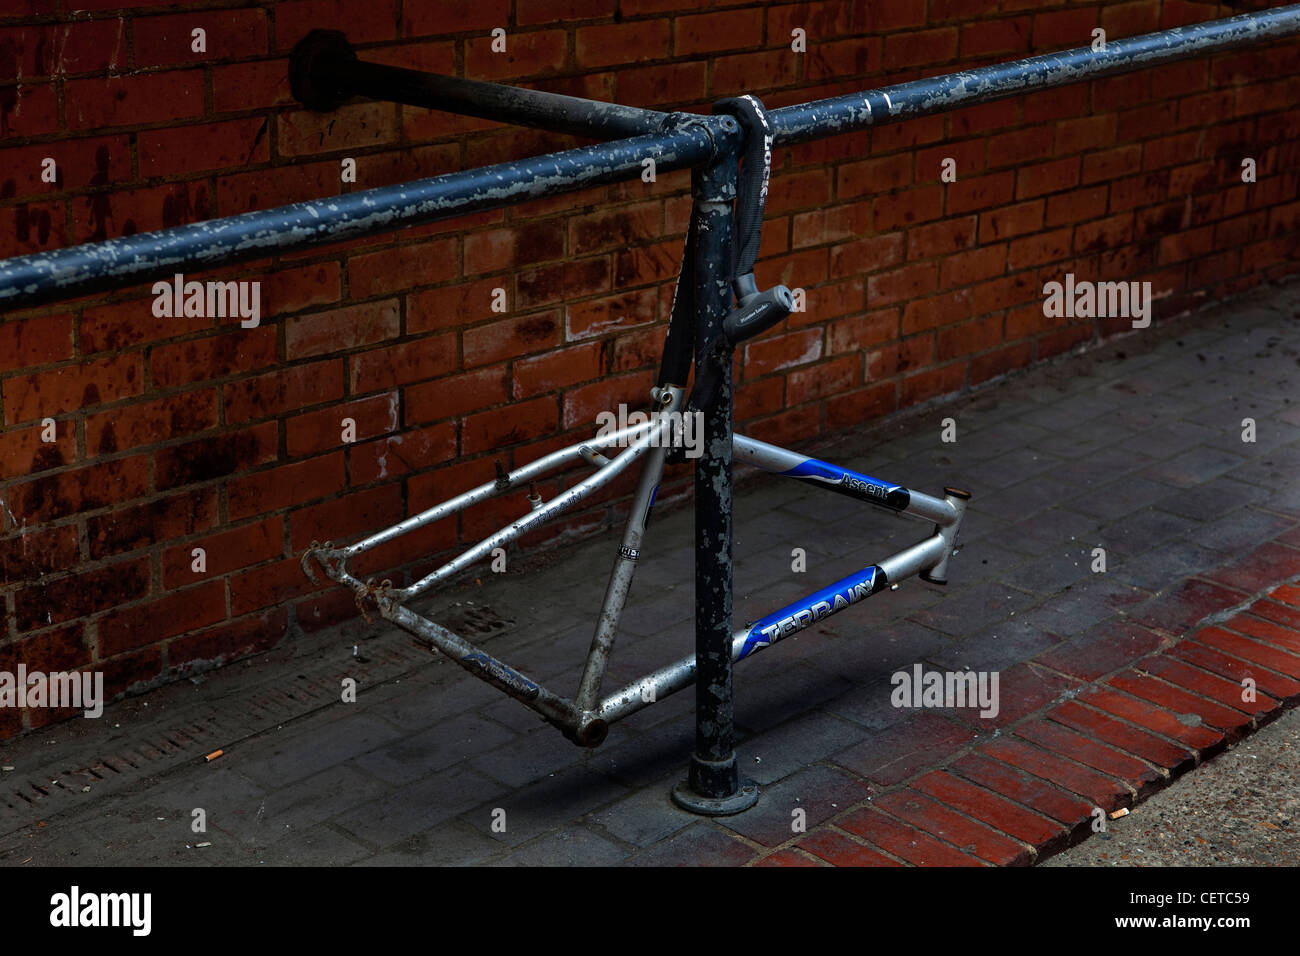 The frame remains of a stolen bicycle, London - Stock Image